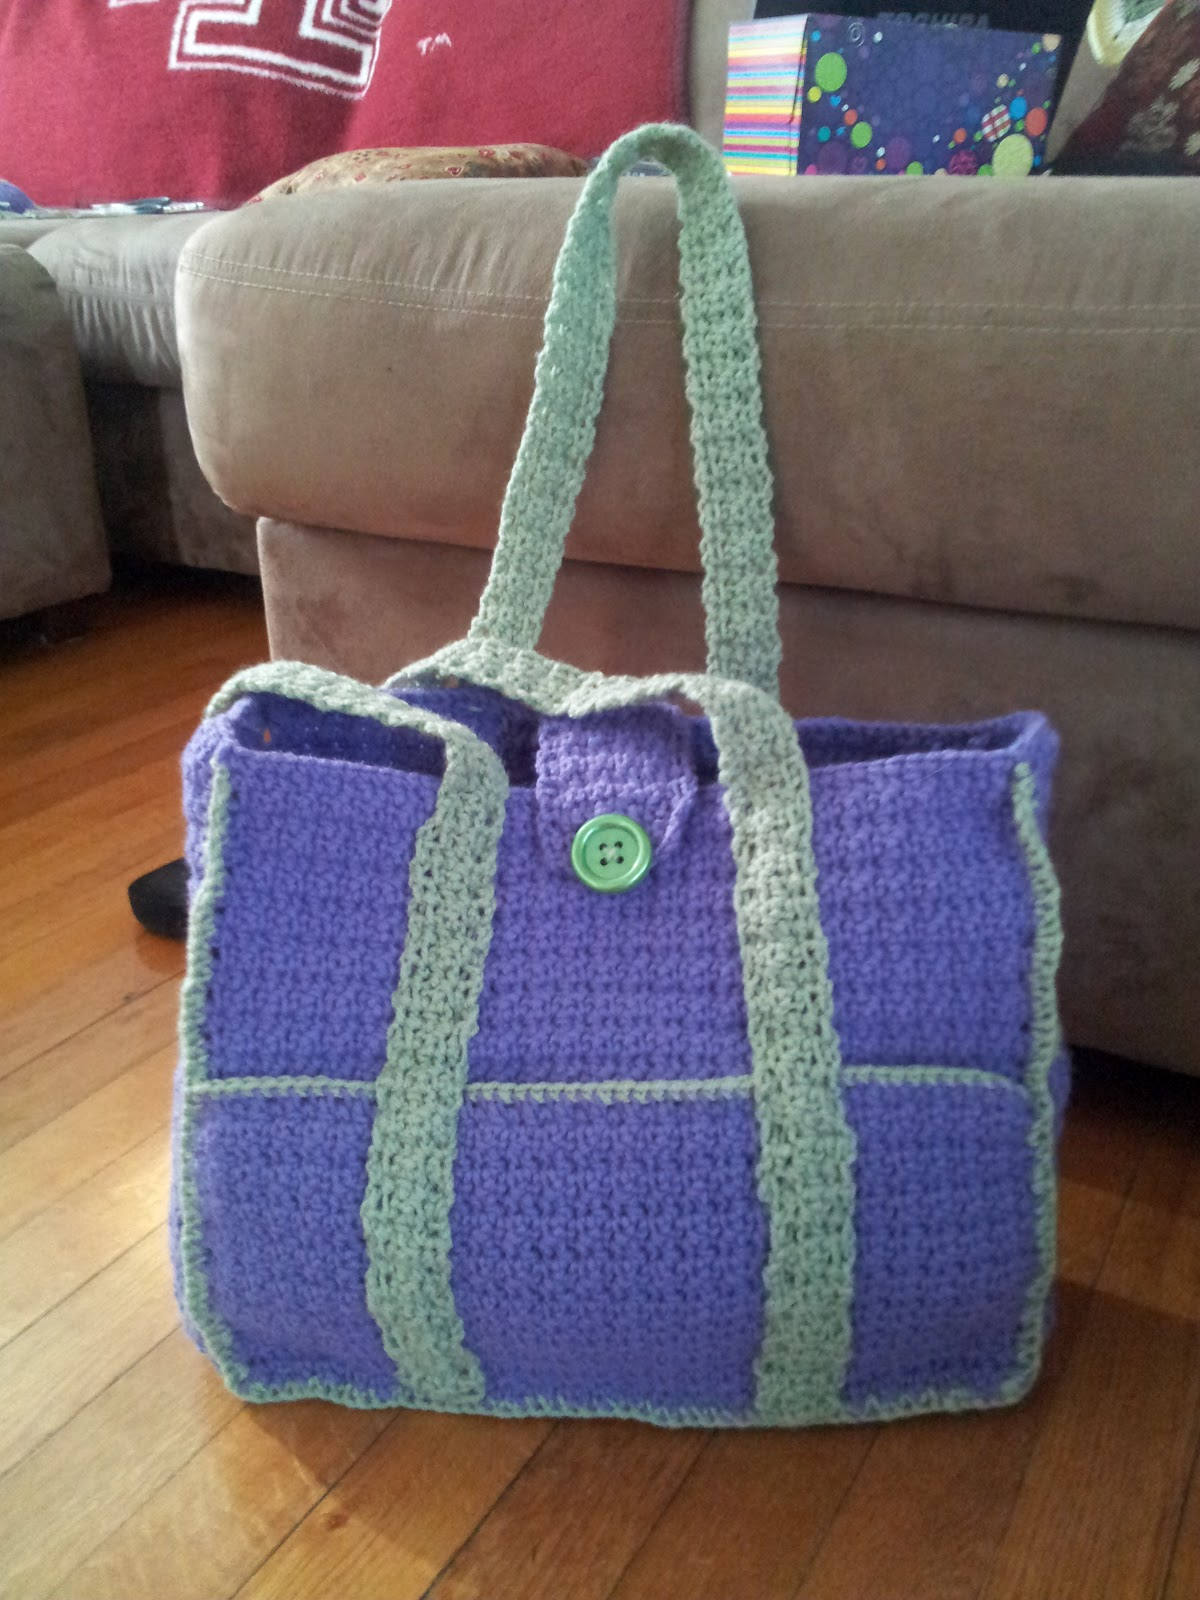 Crochet Baby Diaper Bag Patterns : Ratchit Fratchit Emmers: Crocheted Creation - Diaper Bag